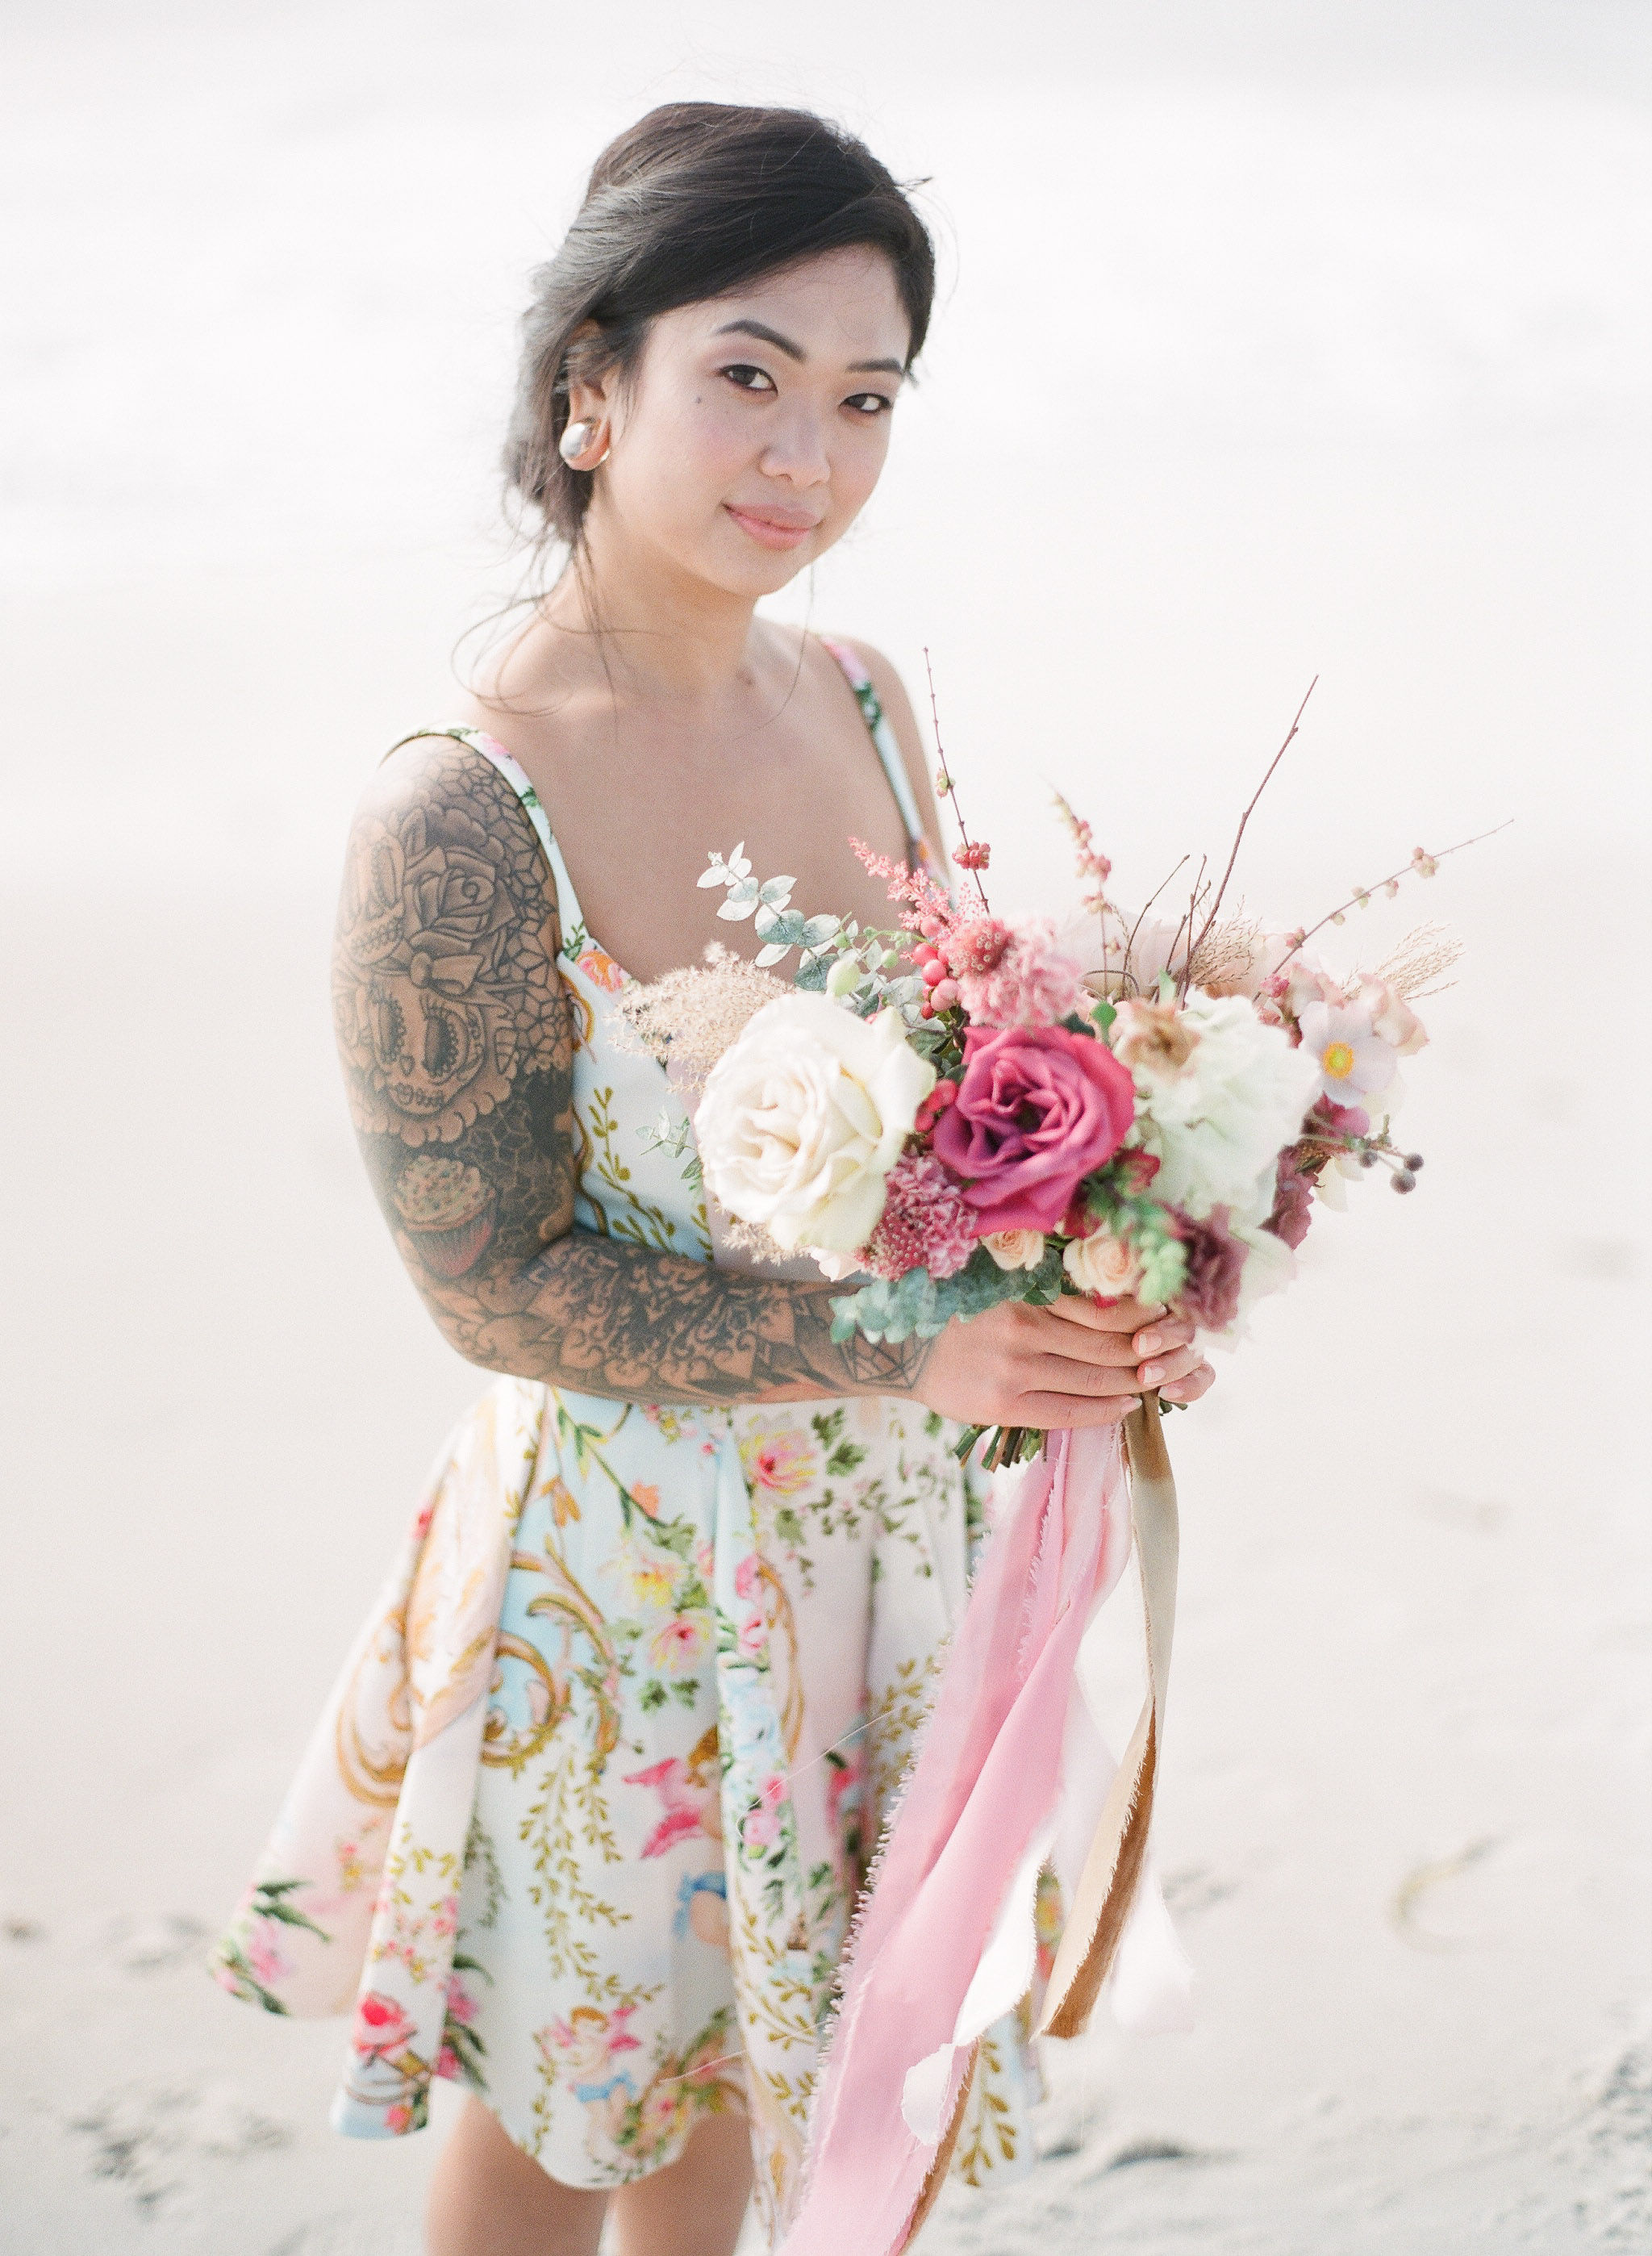 Bridesmaid dress and Pretty floral bouquet with flowy silk ribbons for beach wedding